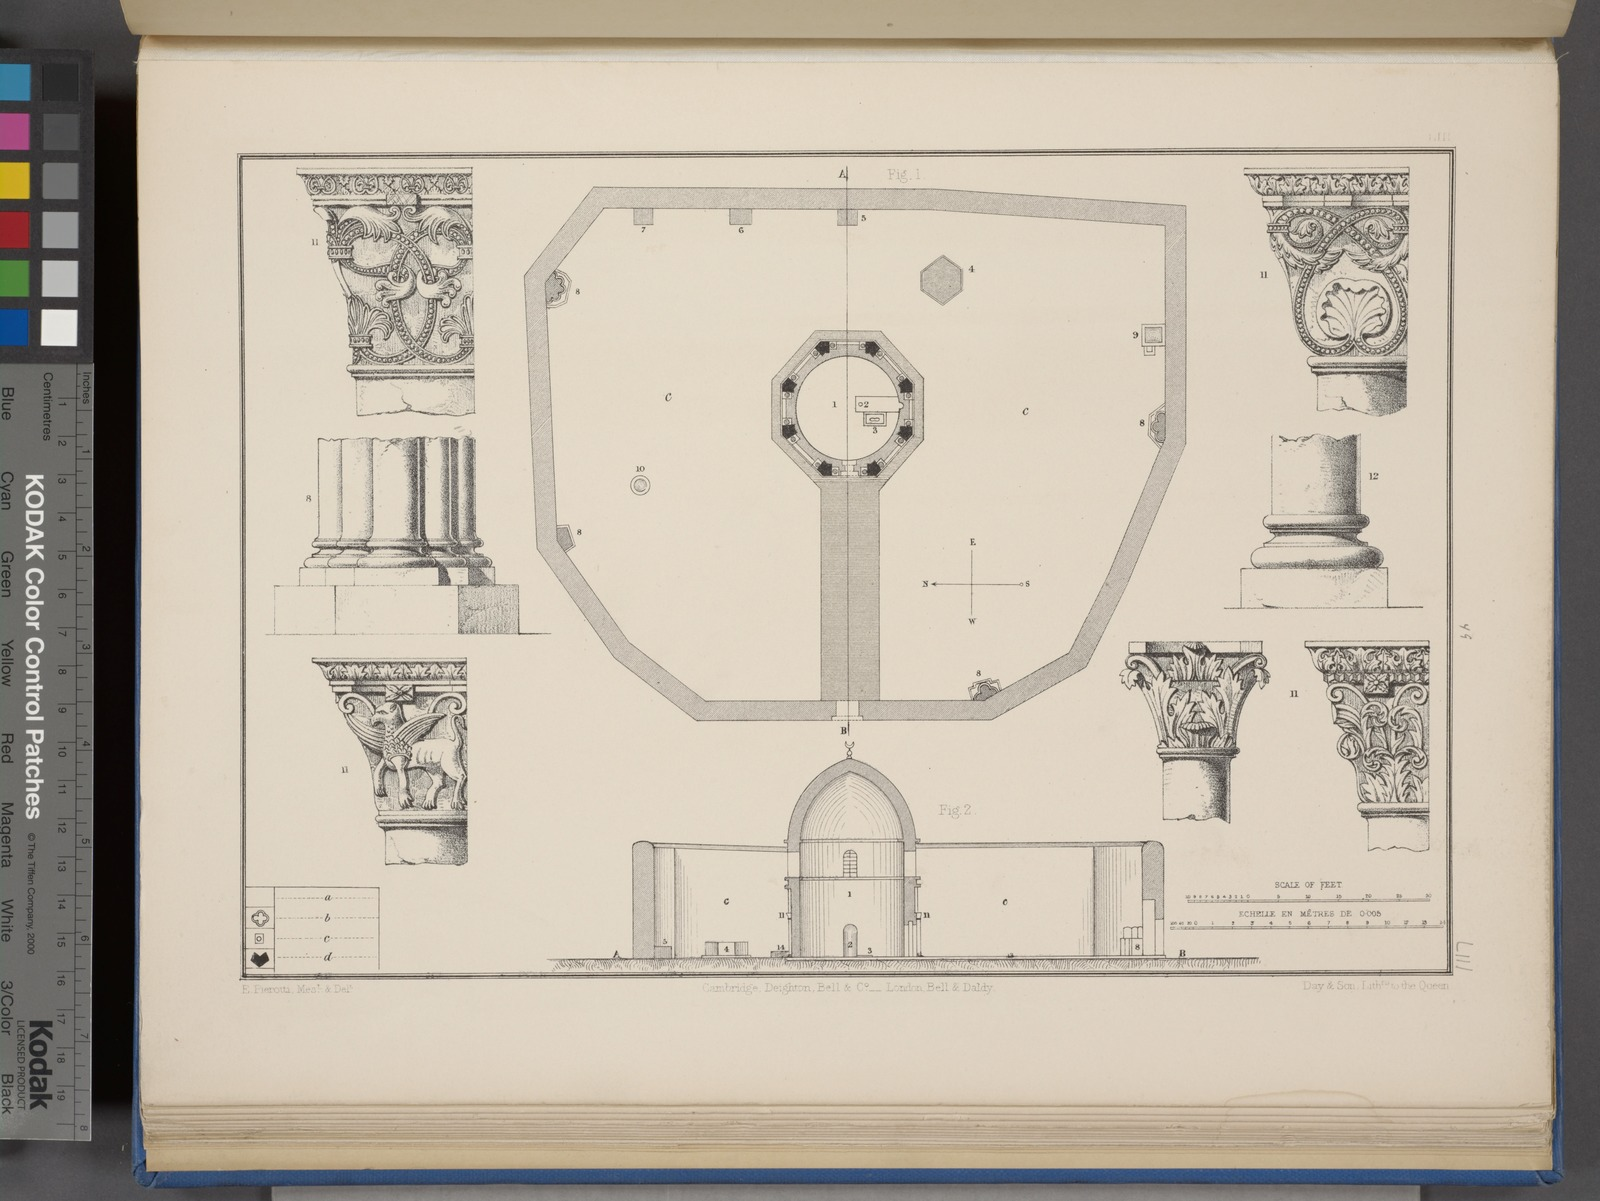 Plan and section of mosque situated on the Mount of Olives, and details of five capitals.